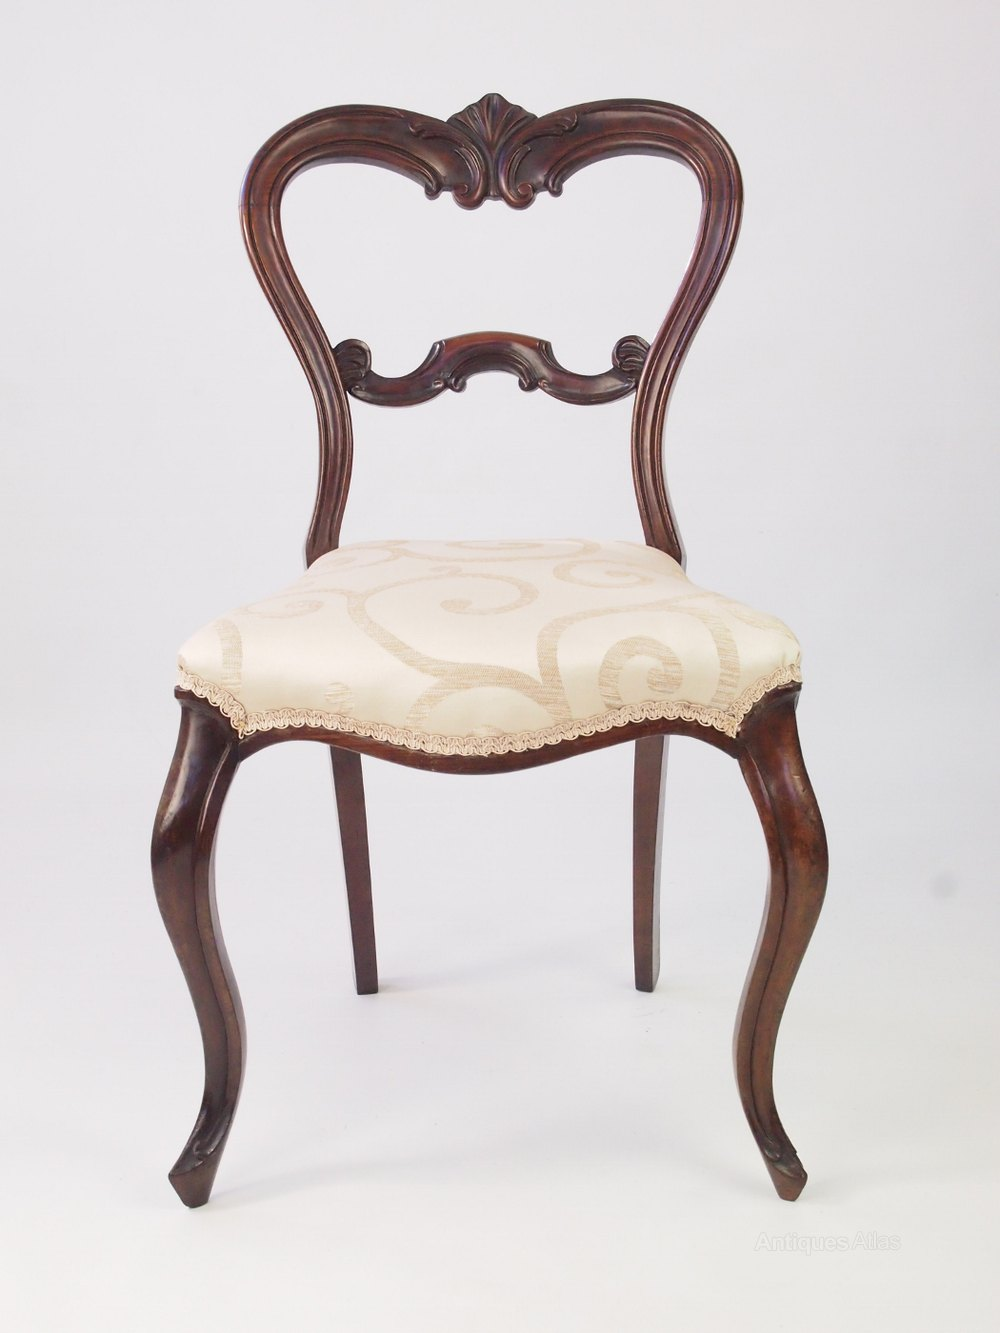 Antique victorian dining chairs - Set 4 Victorian Rosewood Balloon Back Chairs Chair Sets Of 4 Antique Dining Chairs